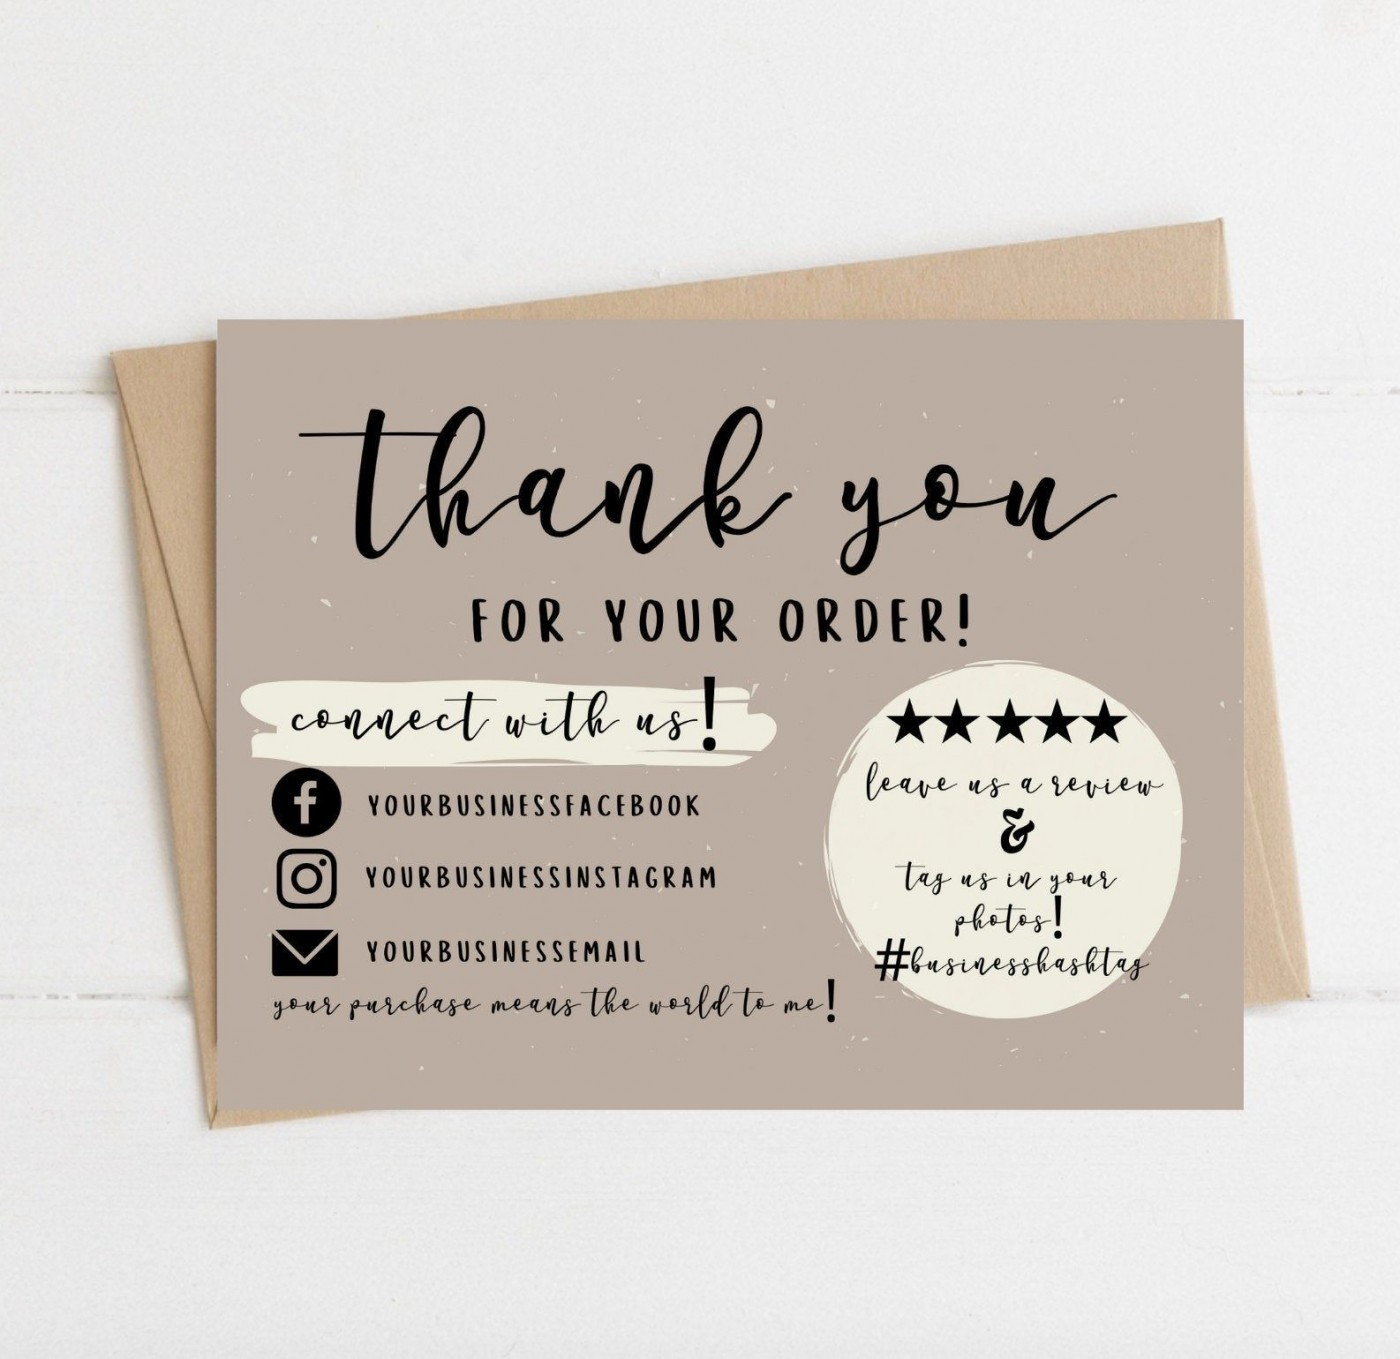 004 Wondrou Thank You Card Template Sample  Wedding Busines Word Free1400